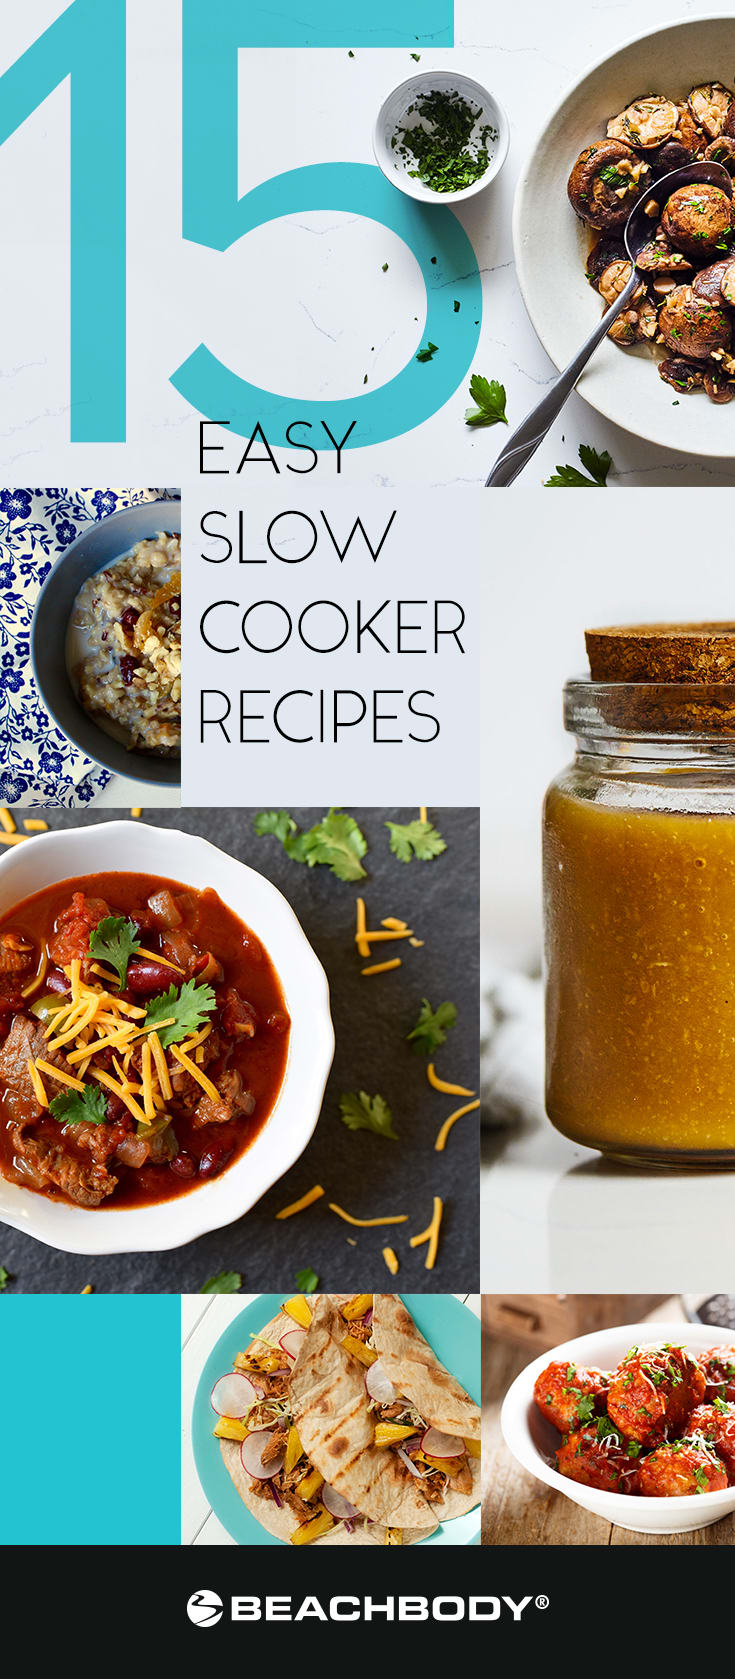 15 Easy Slow Cooker Recipes